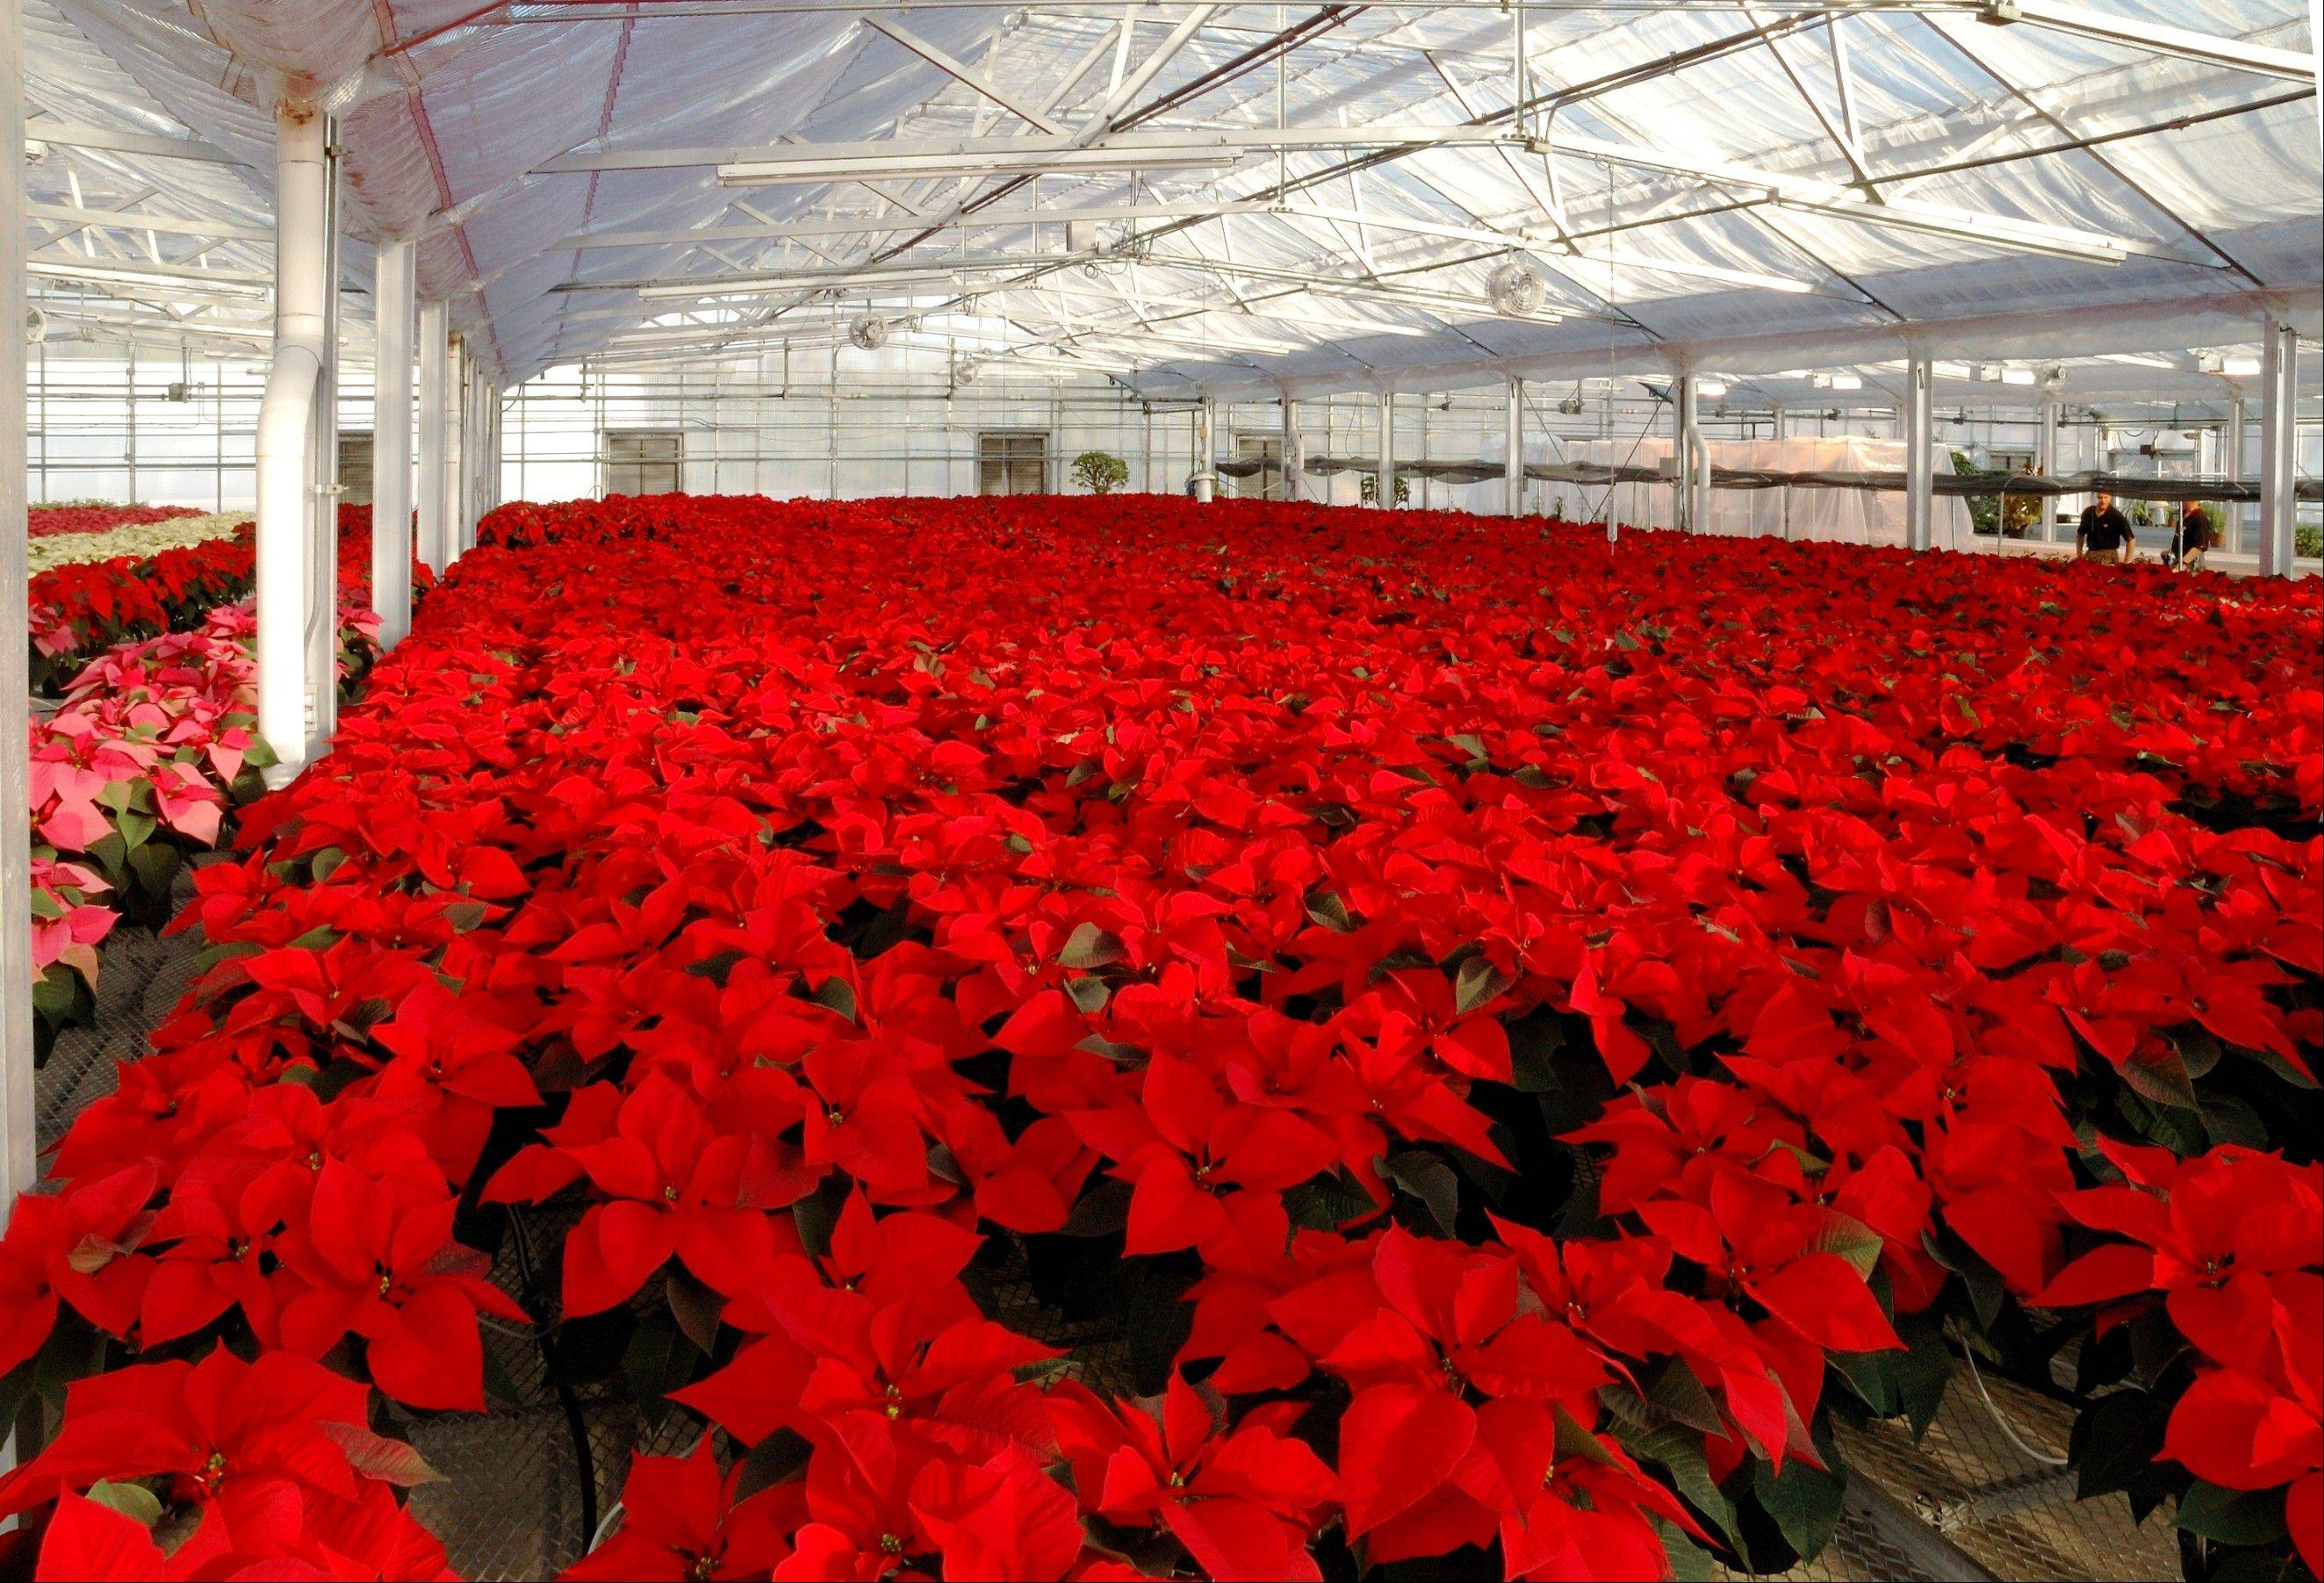 Visitors can view nearly 3,000 poinsettias and other plants Nov. 27 when Cantigny Park opens its greenhouses for the annual Shades of Crimson display.